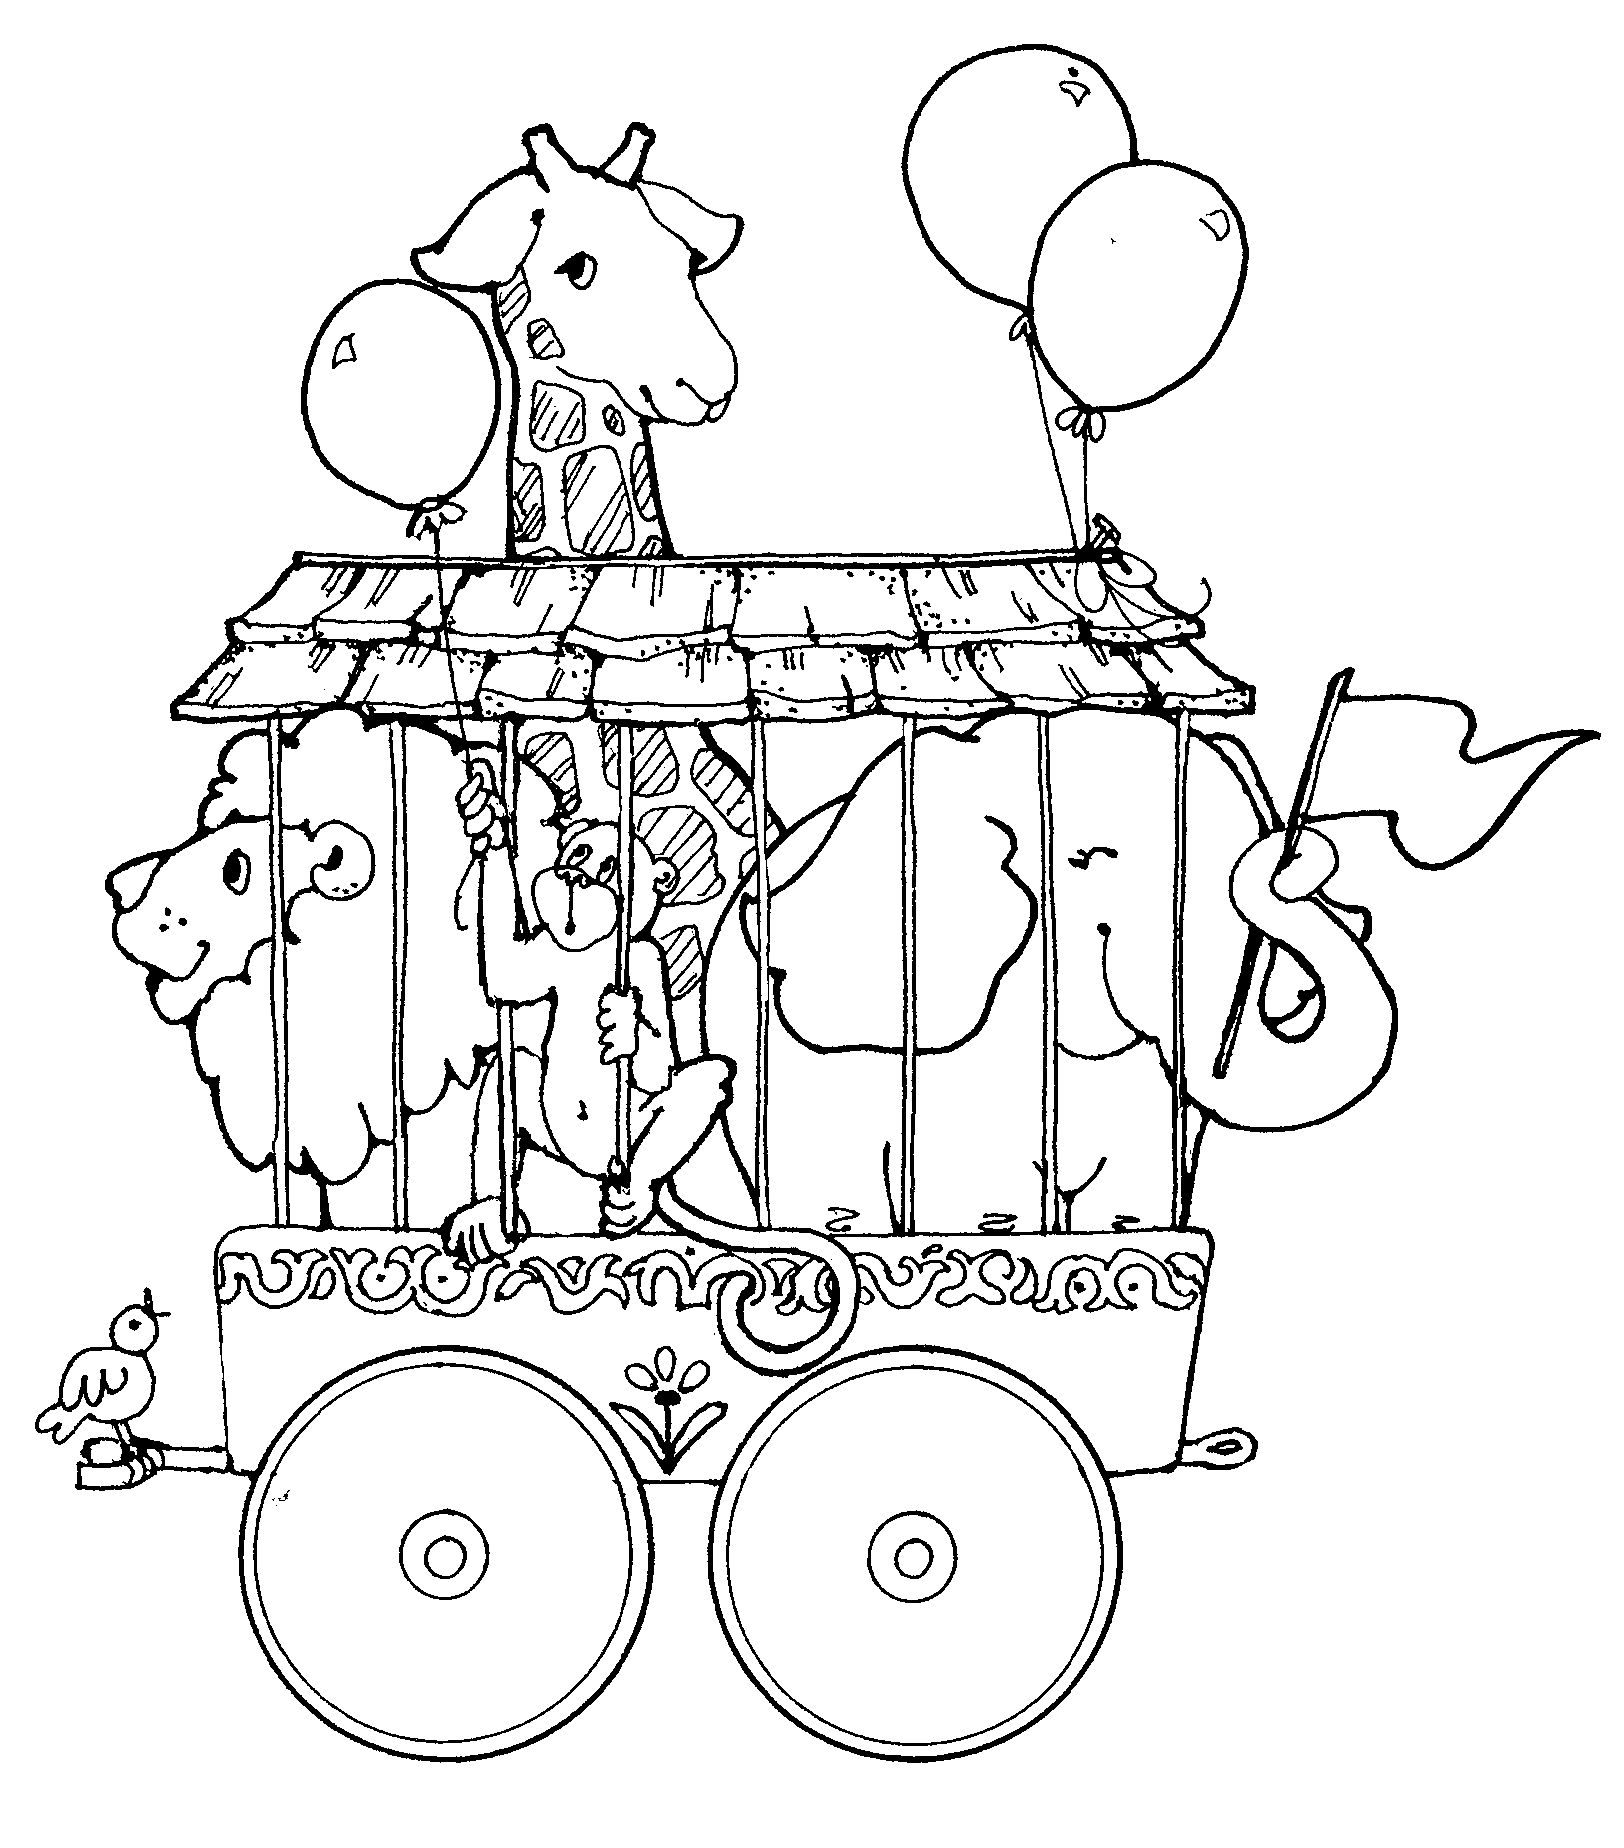 Circus Train With Giraffe Lion And Elephant Coloring Page